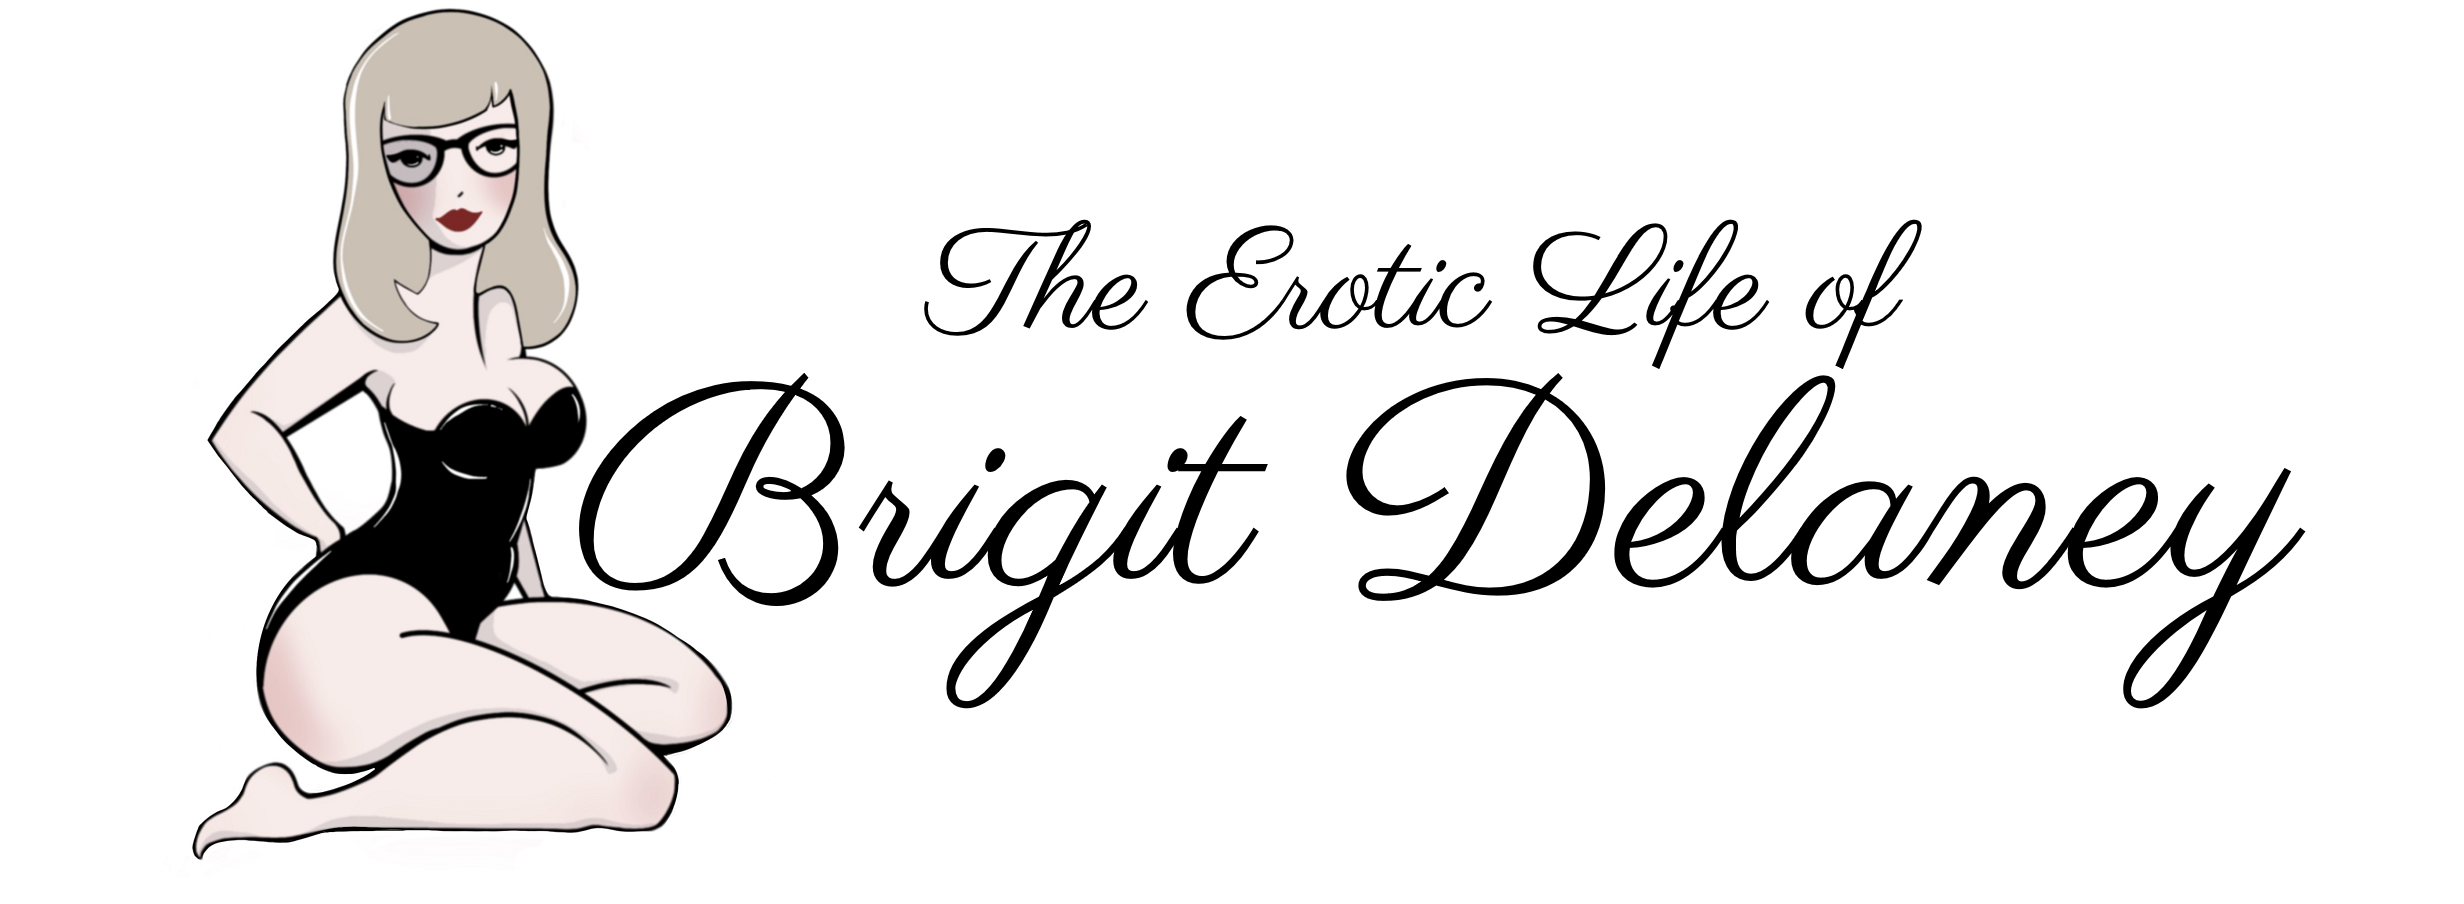 The Erotic Life of Brigit Delaney